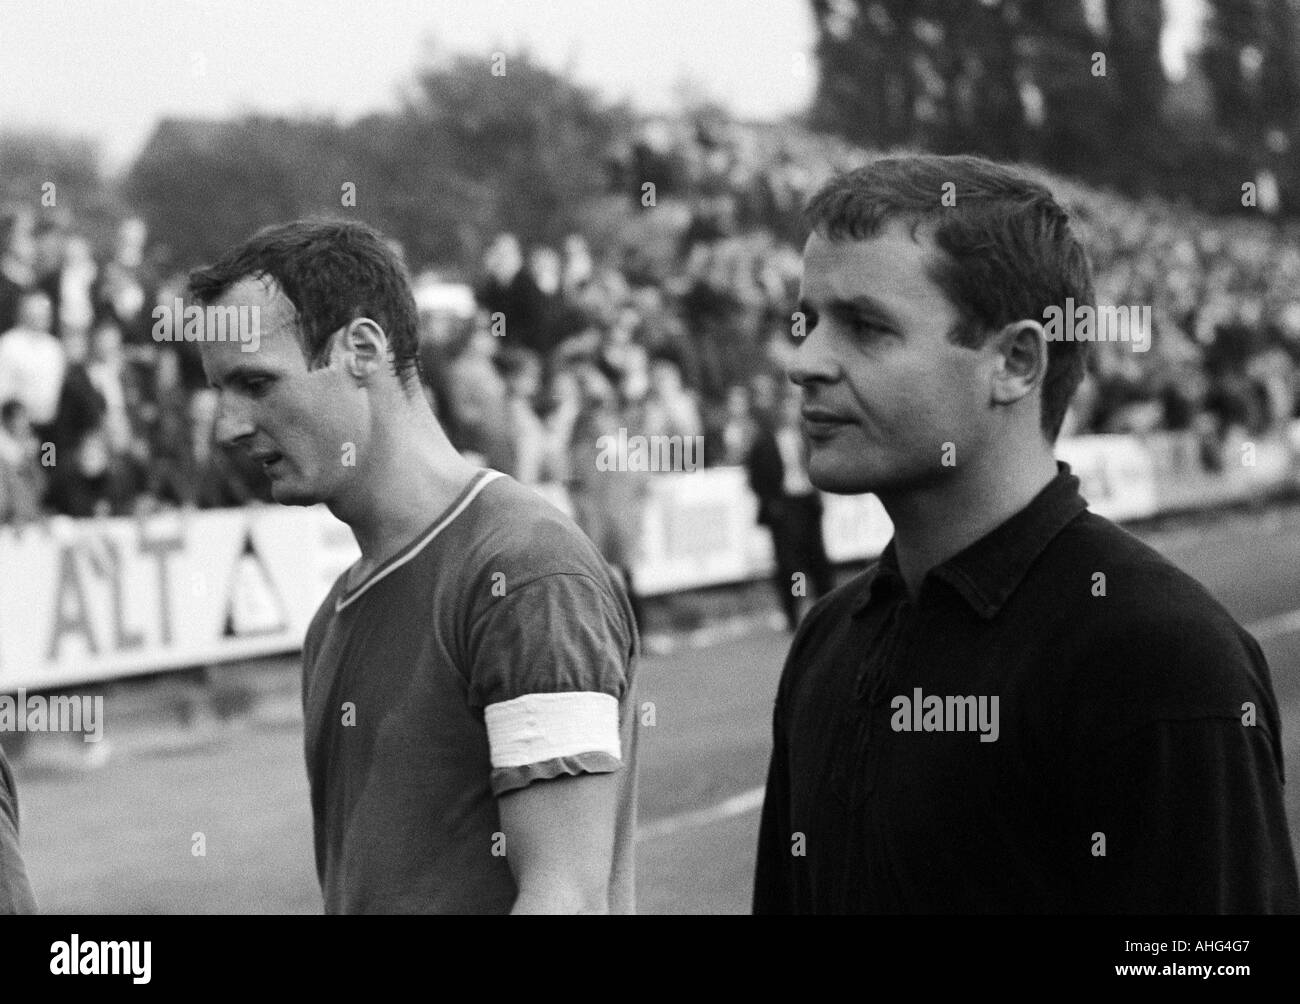 football, Bundesliga, 1967/1968, Borussia Moenchengladbach versus 1. FC Kaiserslautern 8:2, Boekelberg Stadium, football players leaving the pitch, left Gerd Schneider (FCK), right keeper Wolfgang Schnarr (FCK) - Stock Image